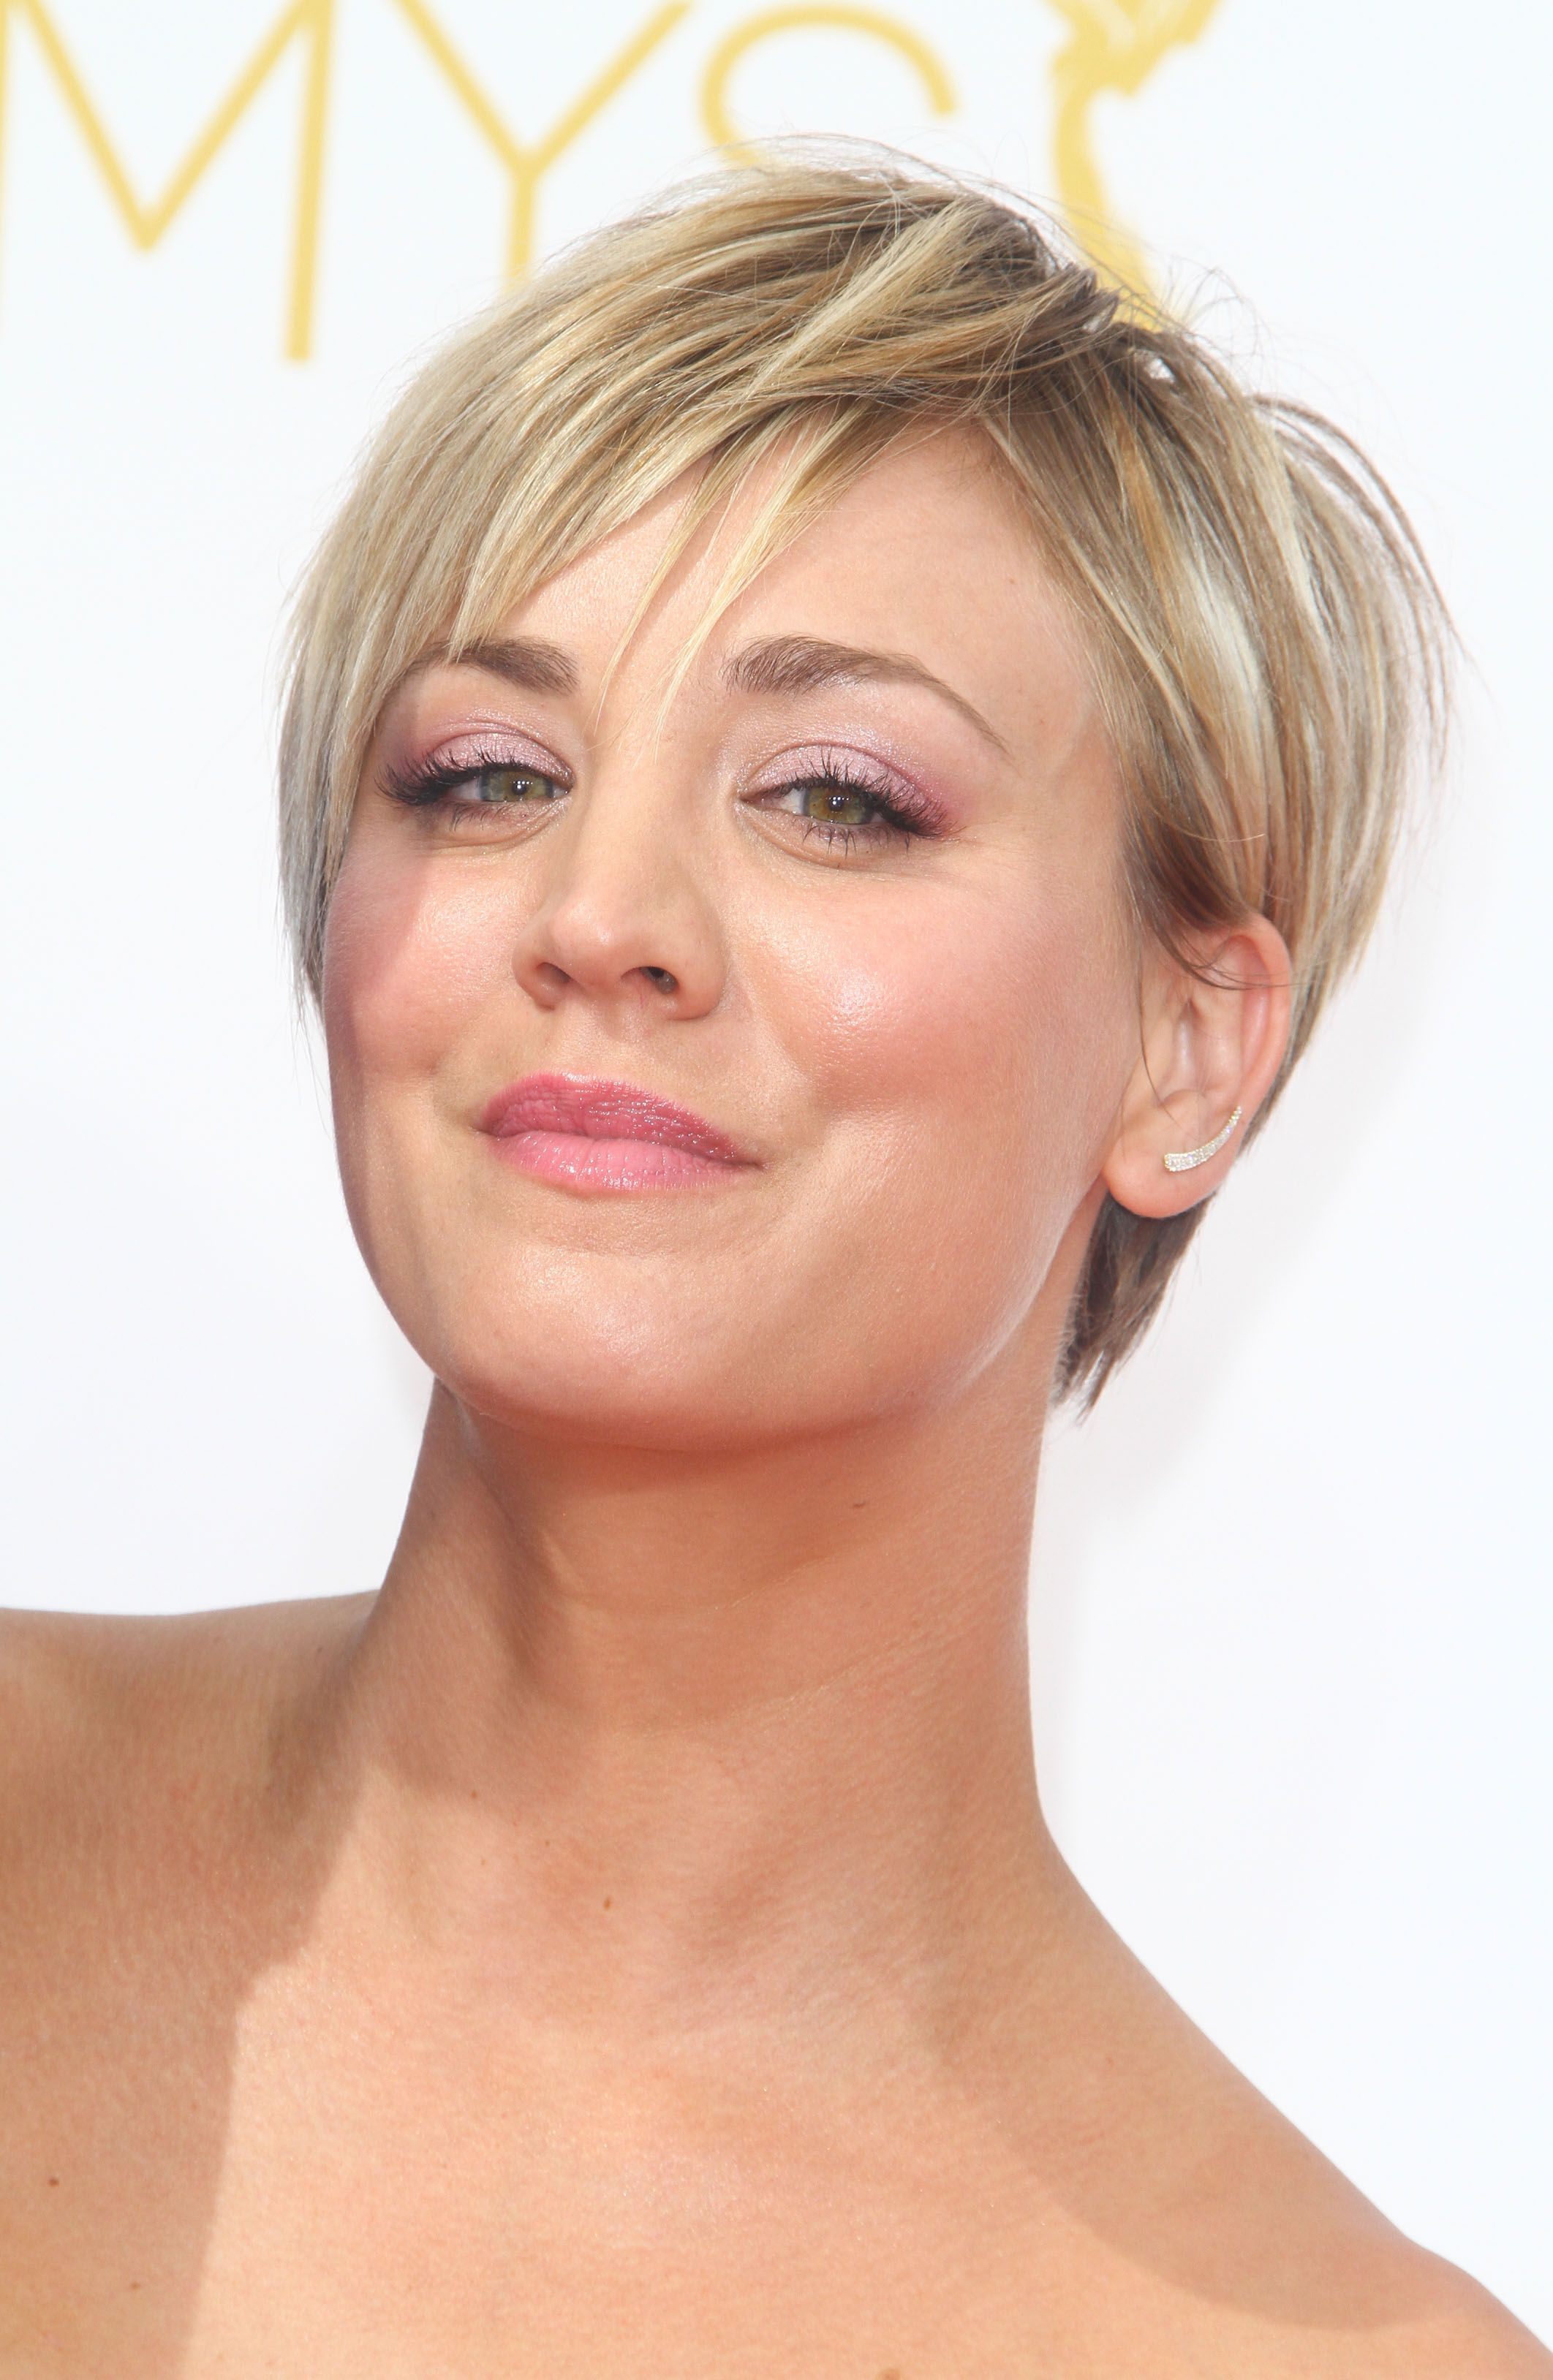 Kaley Cuoco Short Straight Golden Blonde Hairstyle with